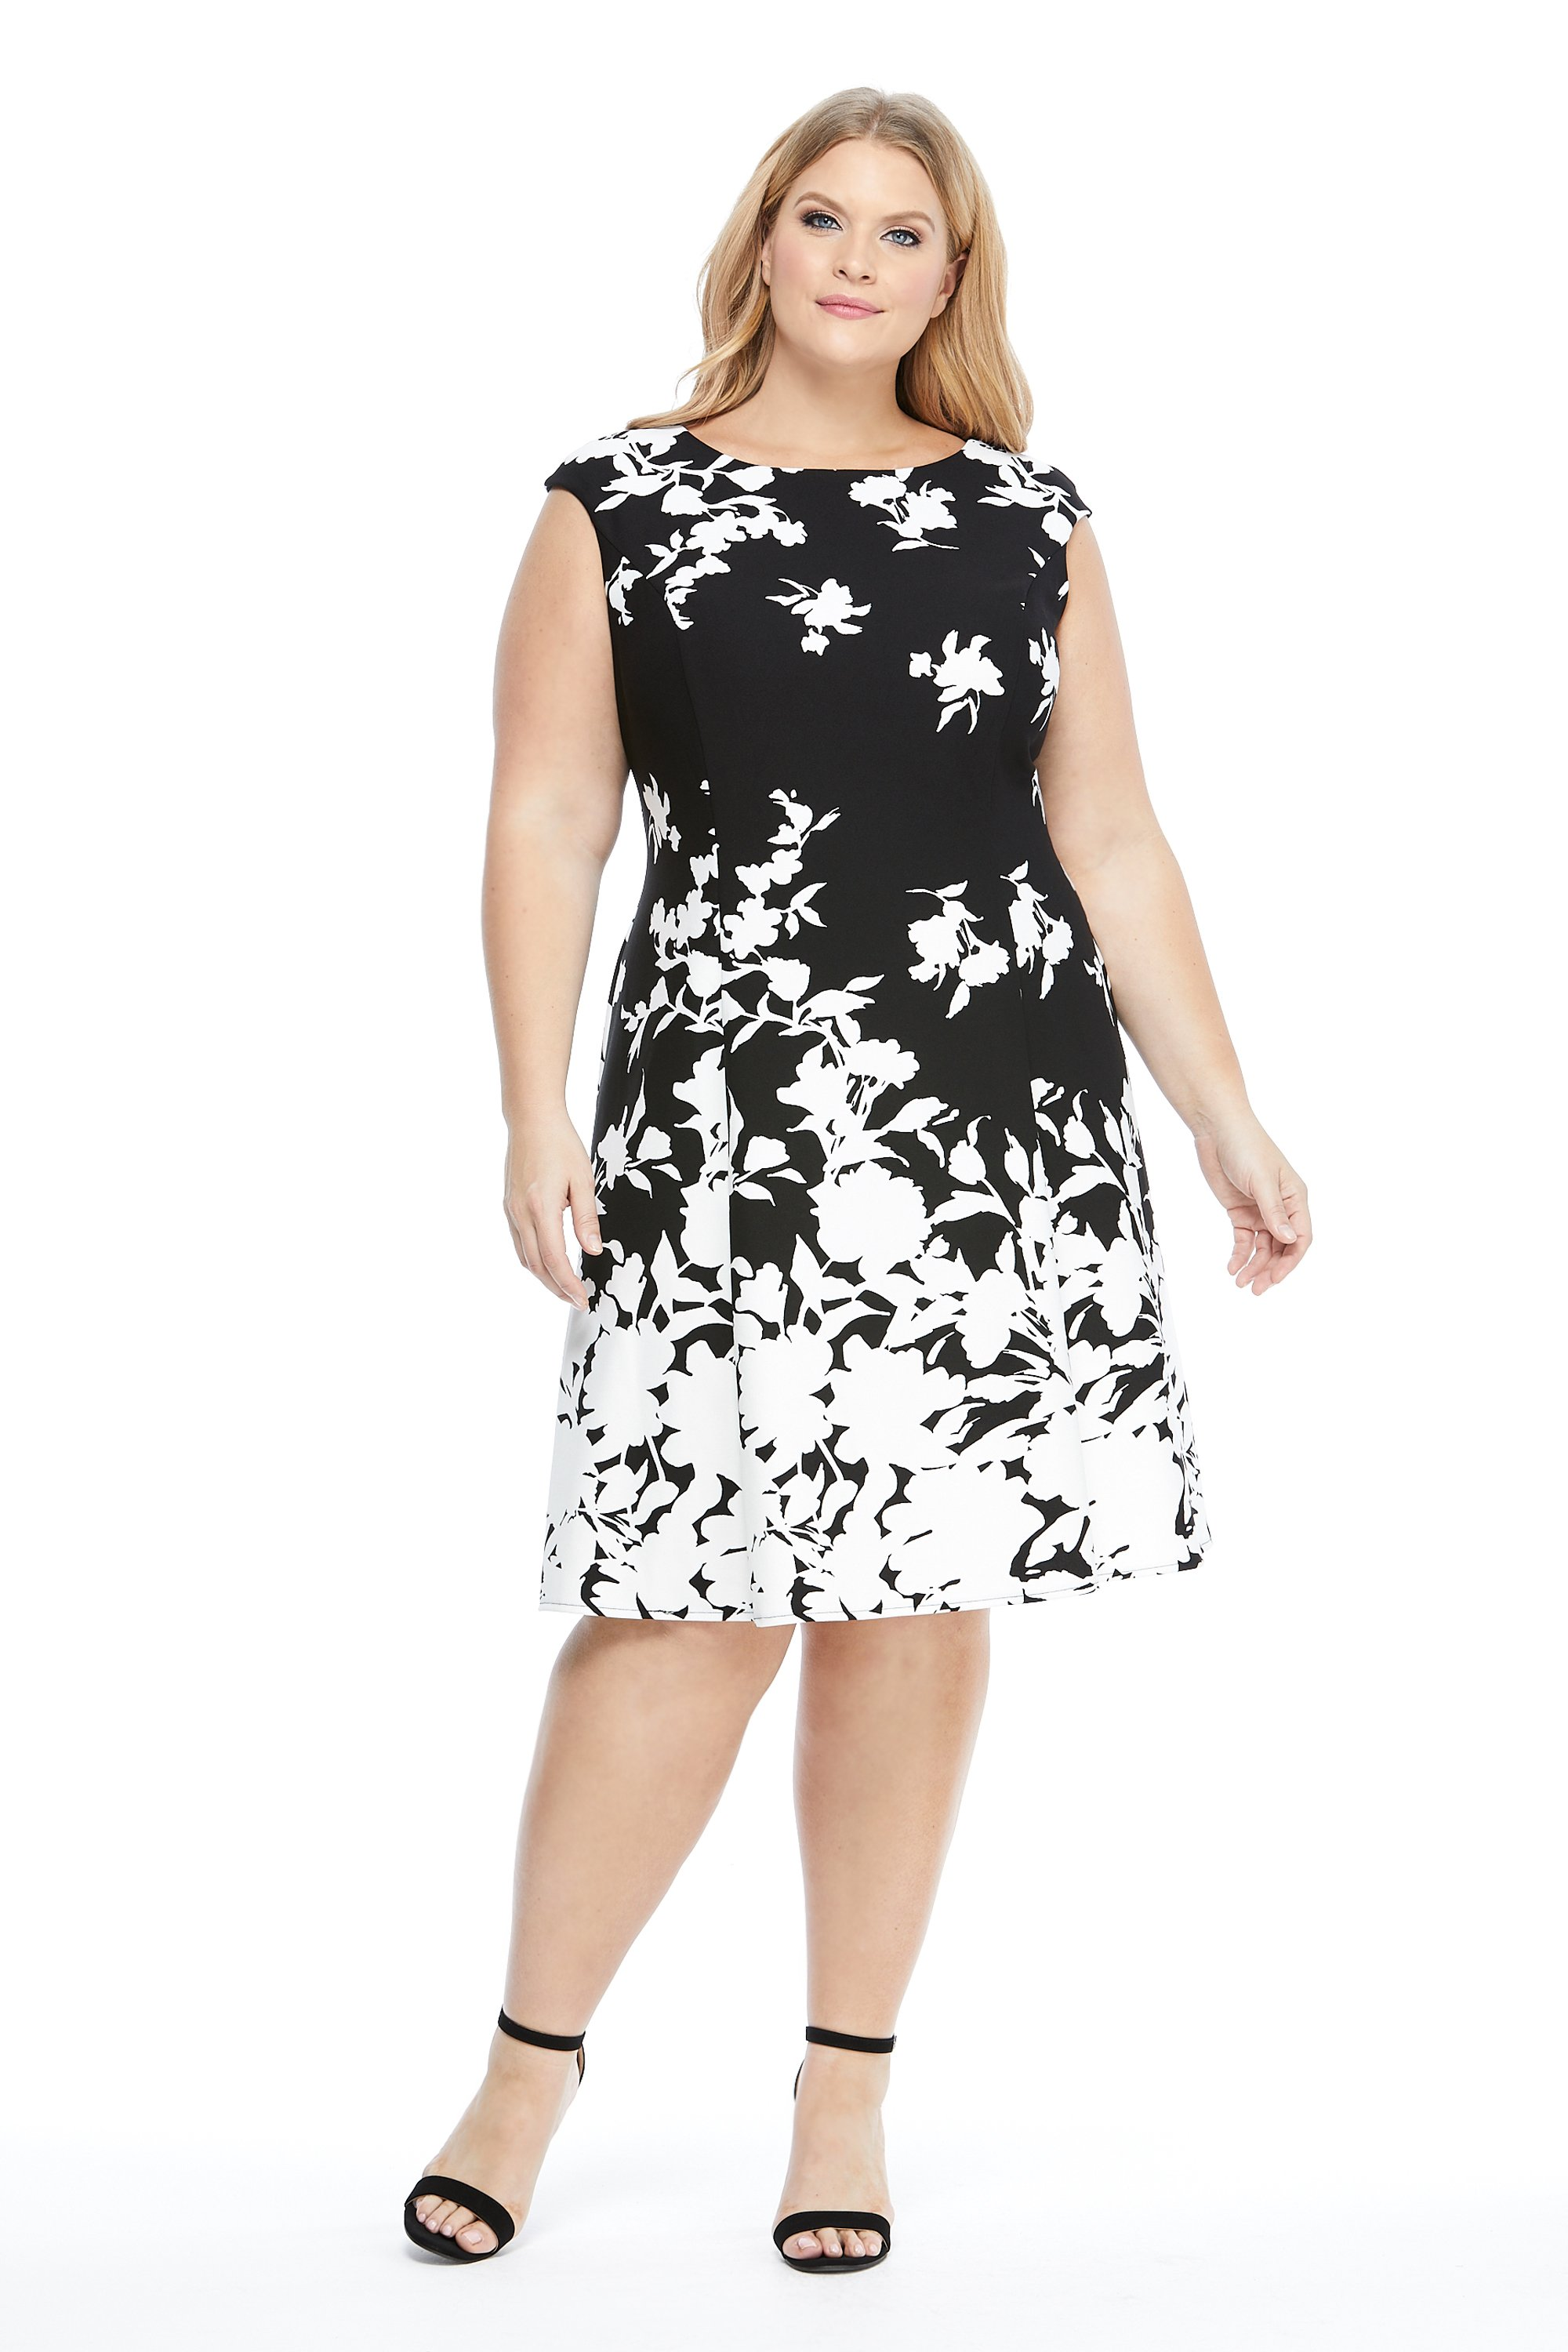 Floral Boarder Fit And Flare Dress -Black/White - Front